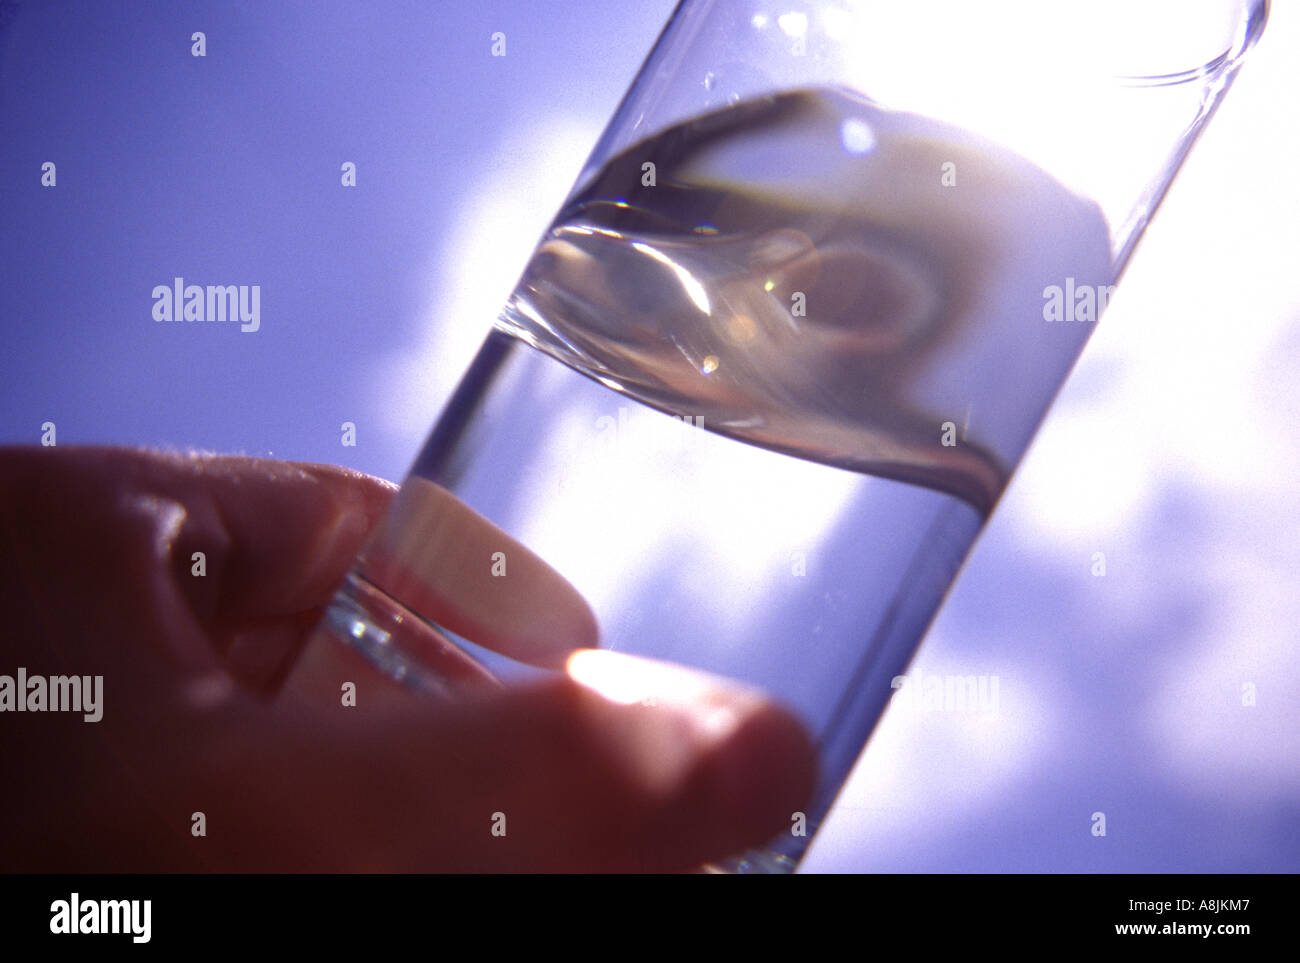 hand holding glass containing water outdoors in sunshine Stock Photo